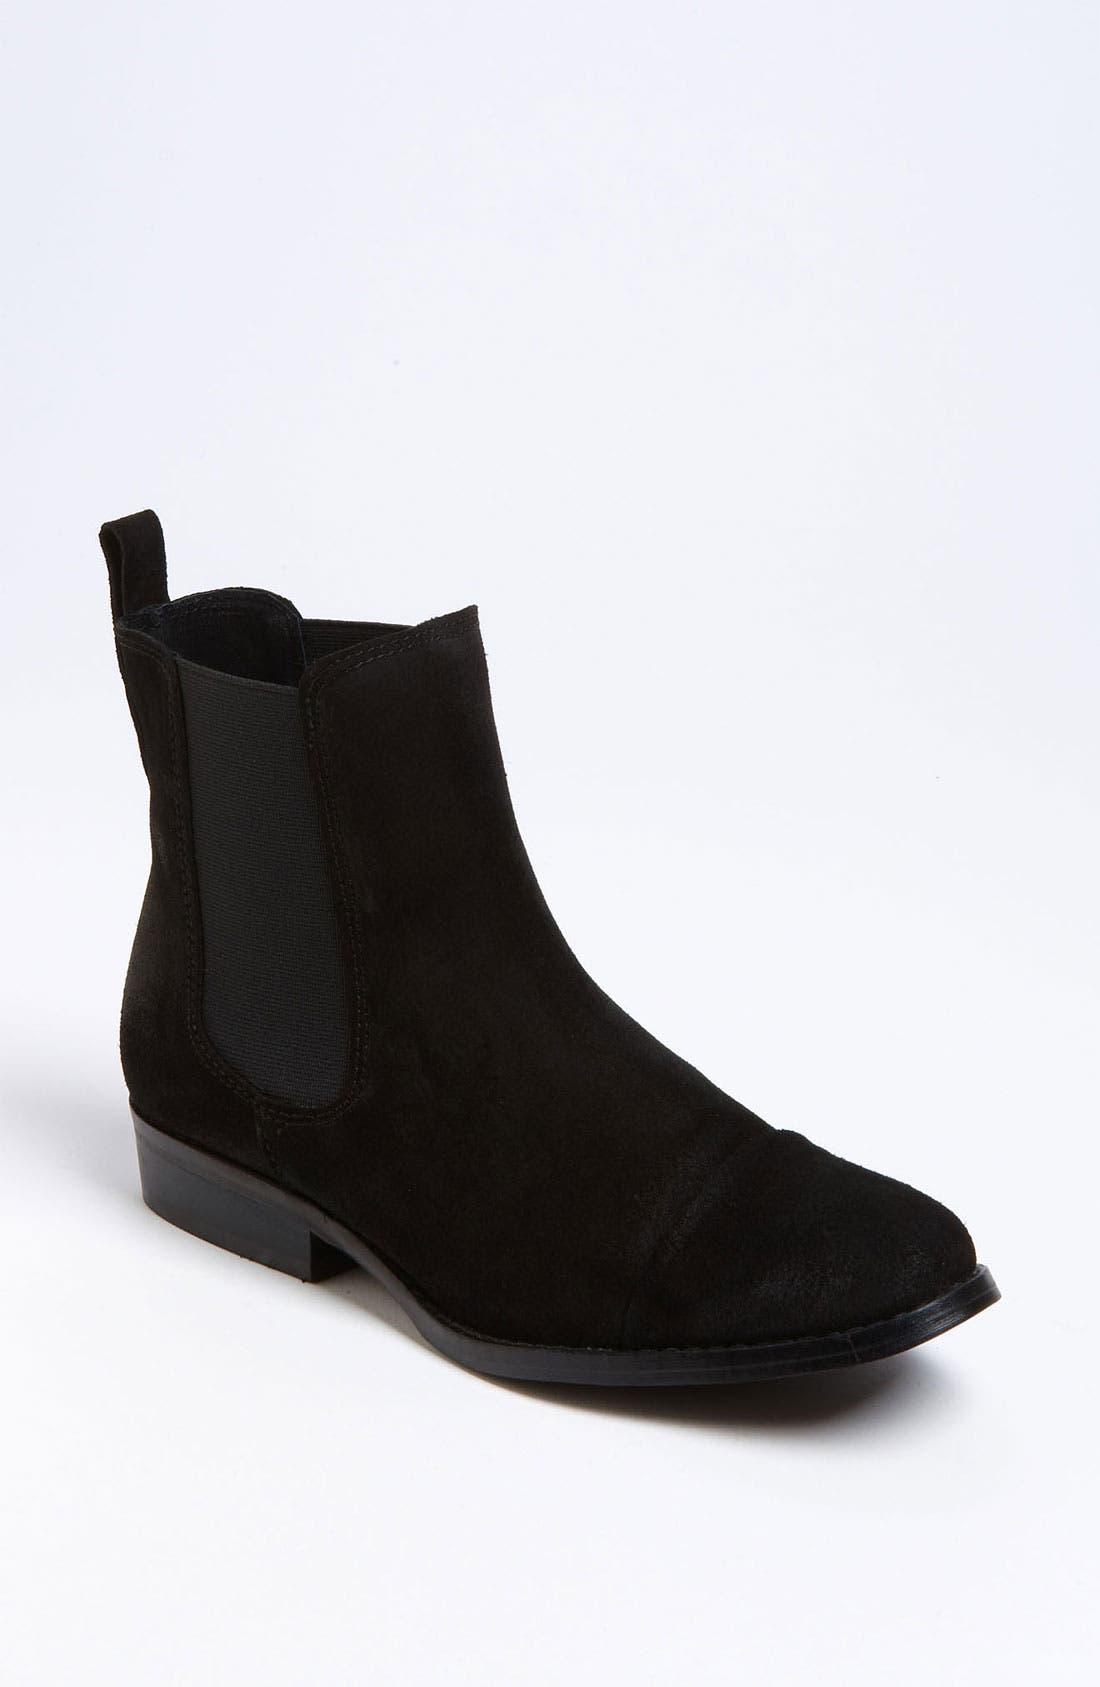 Alternate Image 1 Selected - Jeffrey Campbell 'Areas Low' Boot